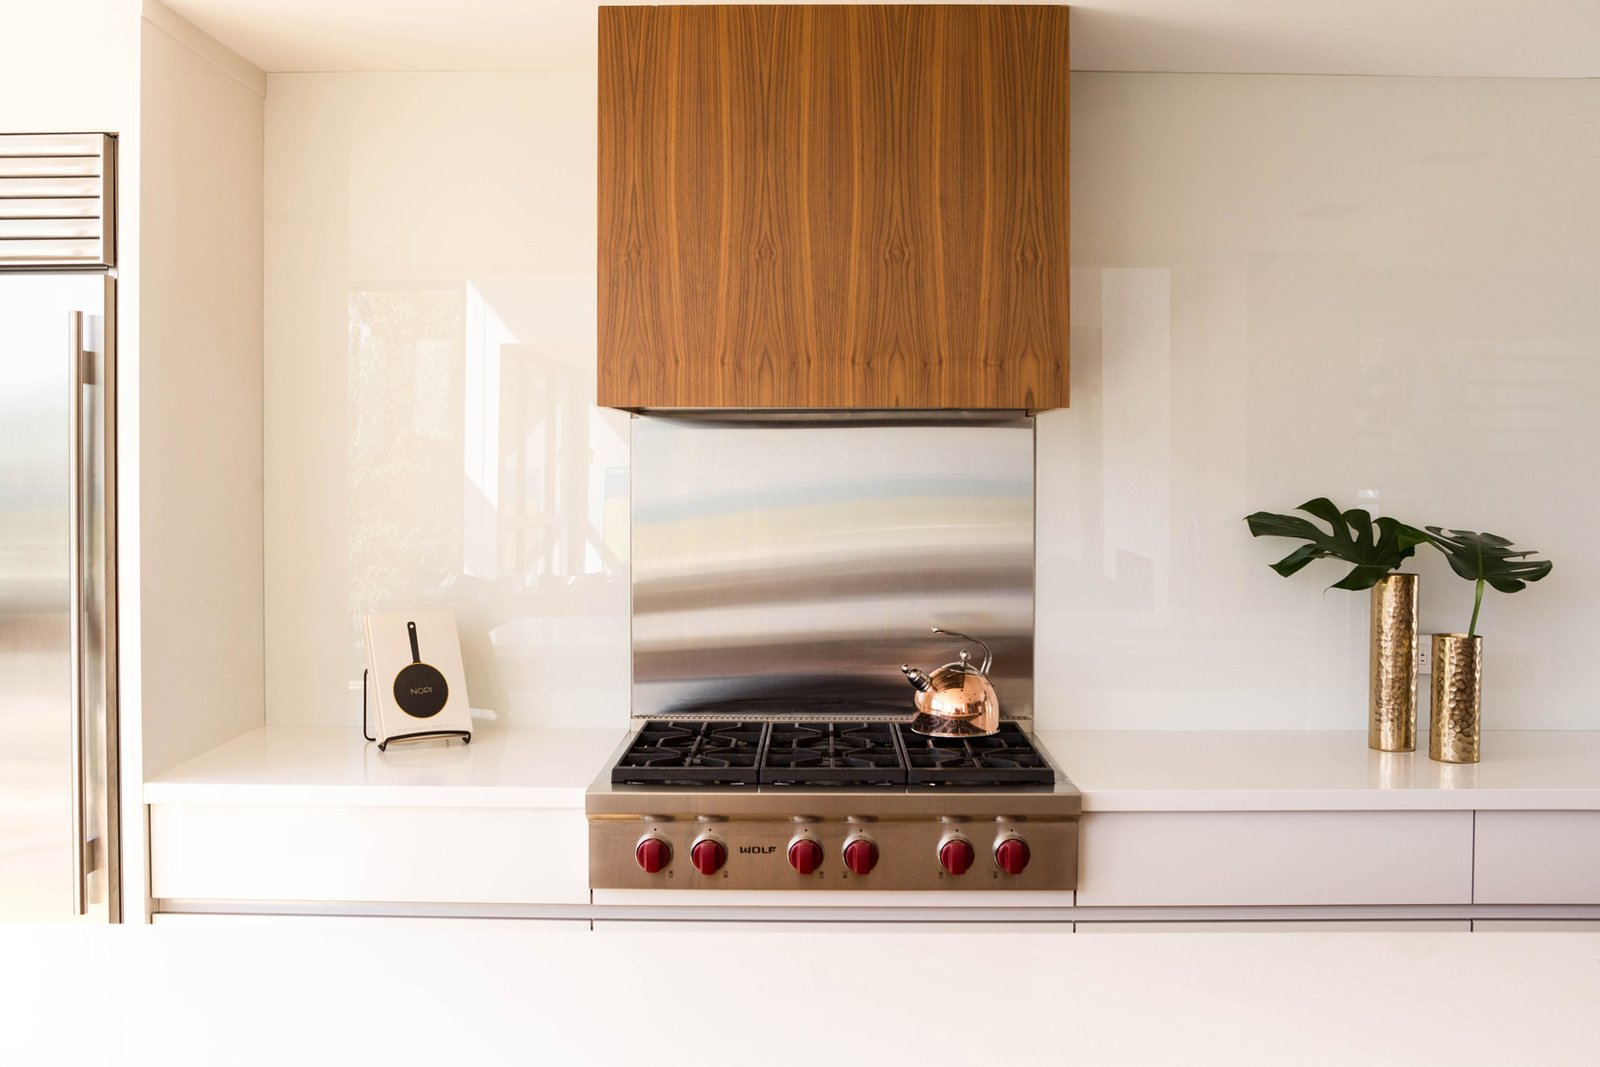 The Sub-Zero and Wolf appliances, which include a fridge, cook top, and a wall oven, were selected for both their performance capabilities, as well as their aesthetic appeal, which suited the contemporary design of the kitchen.  Ravine House by FrankFranco Architects